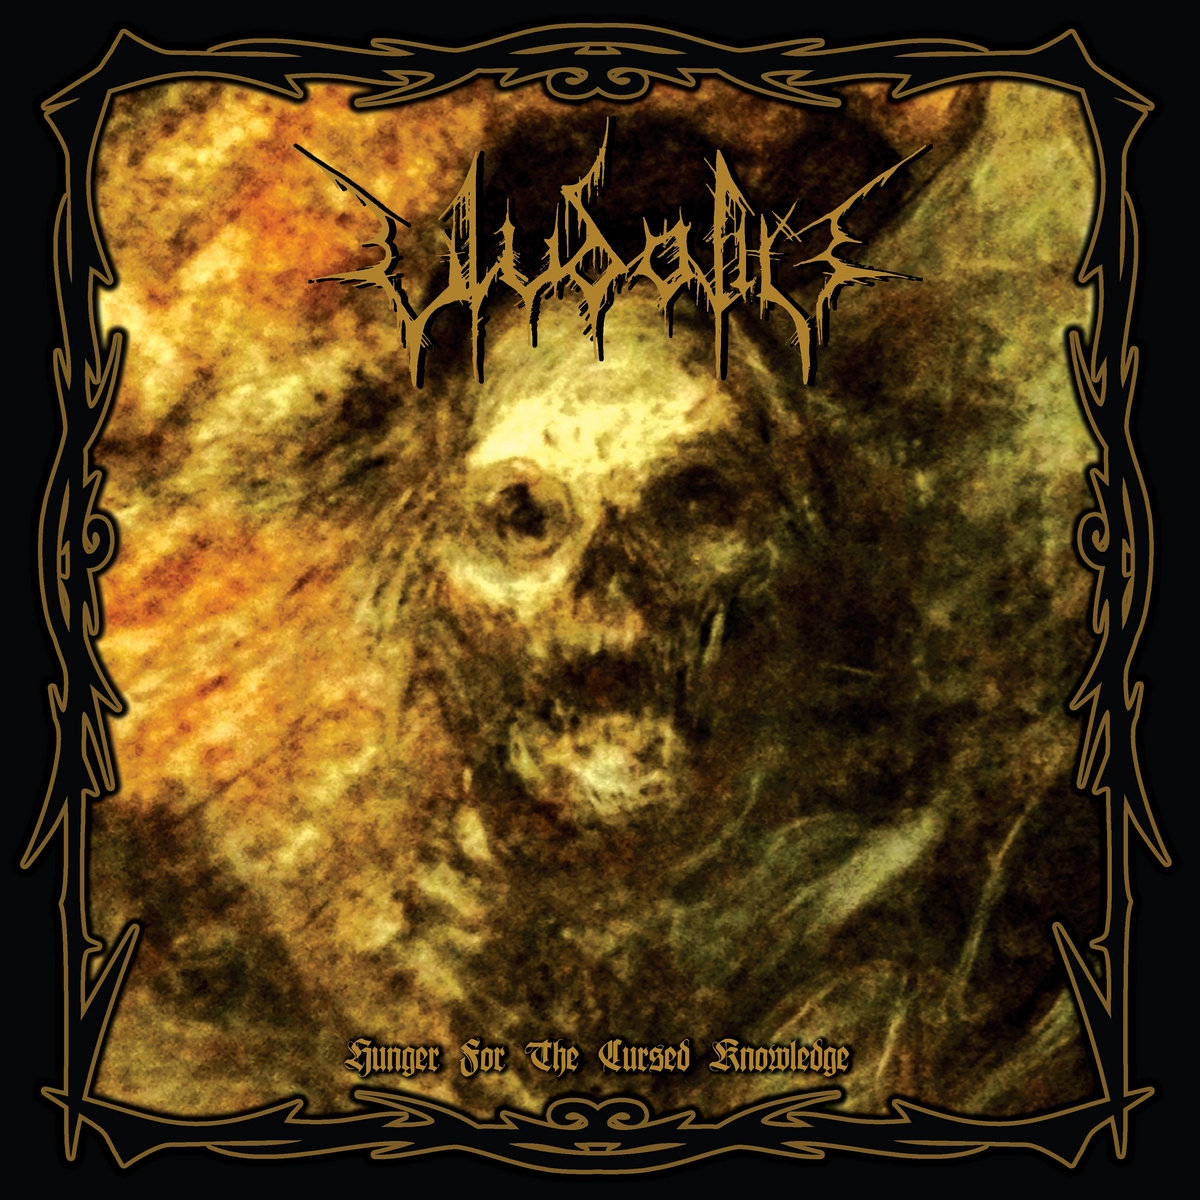 Ulvdalir – Hunger for the Cursed Knowledge (2020) [FLAC]